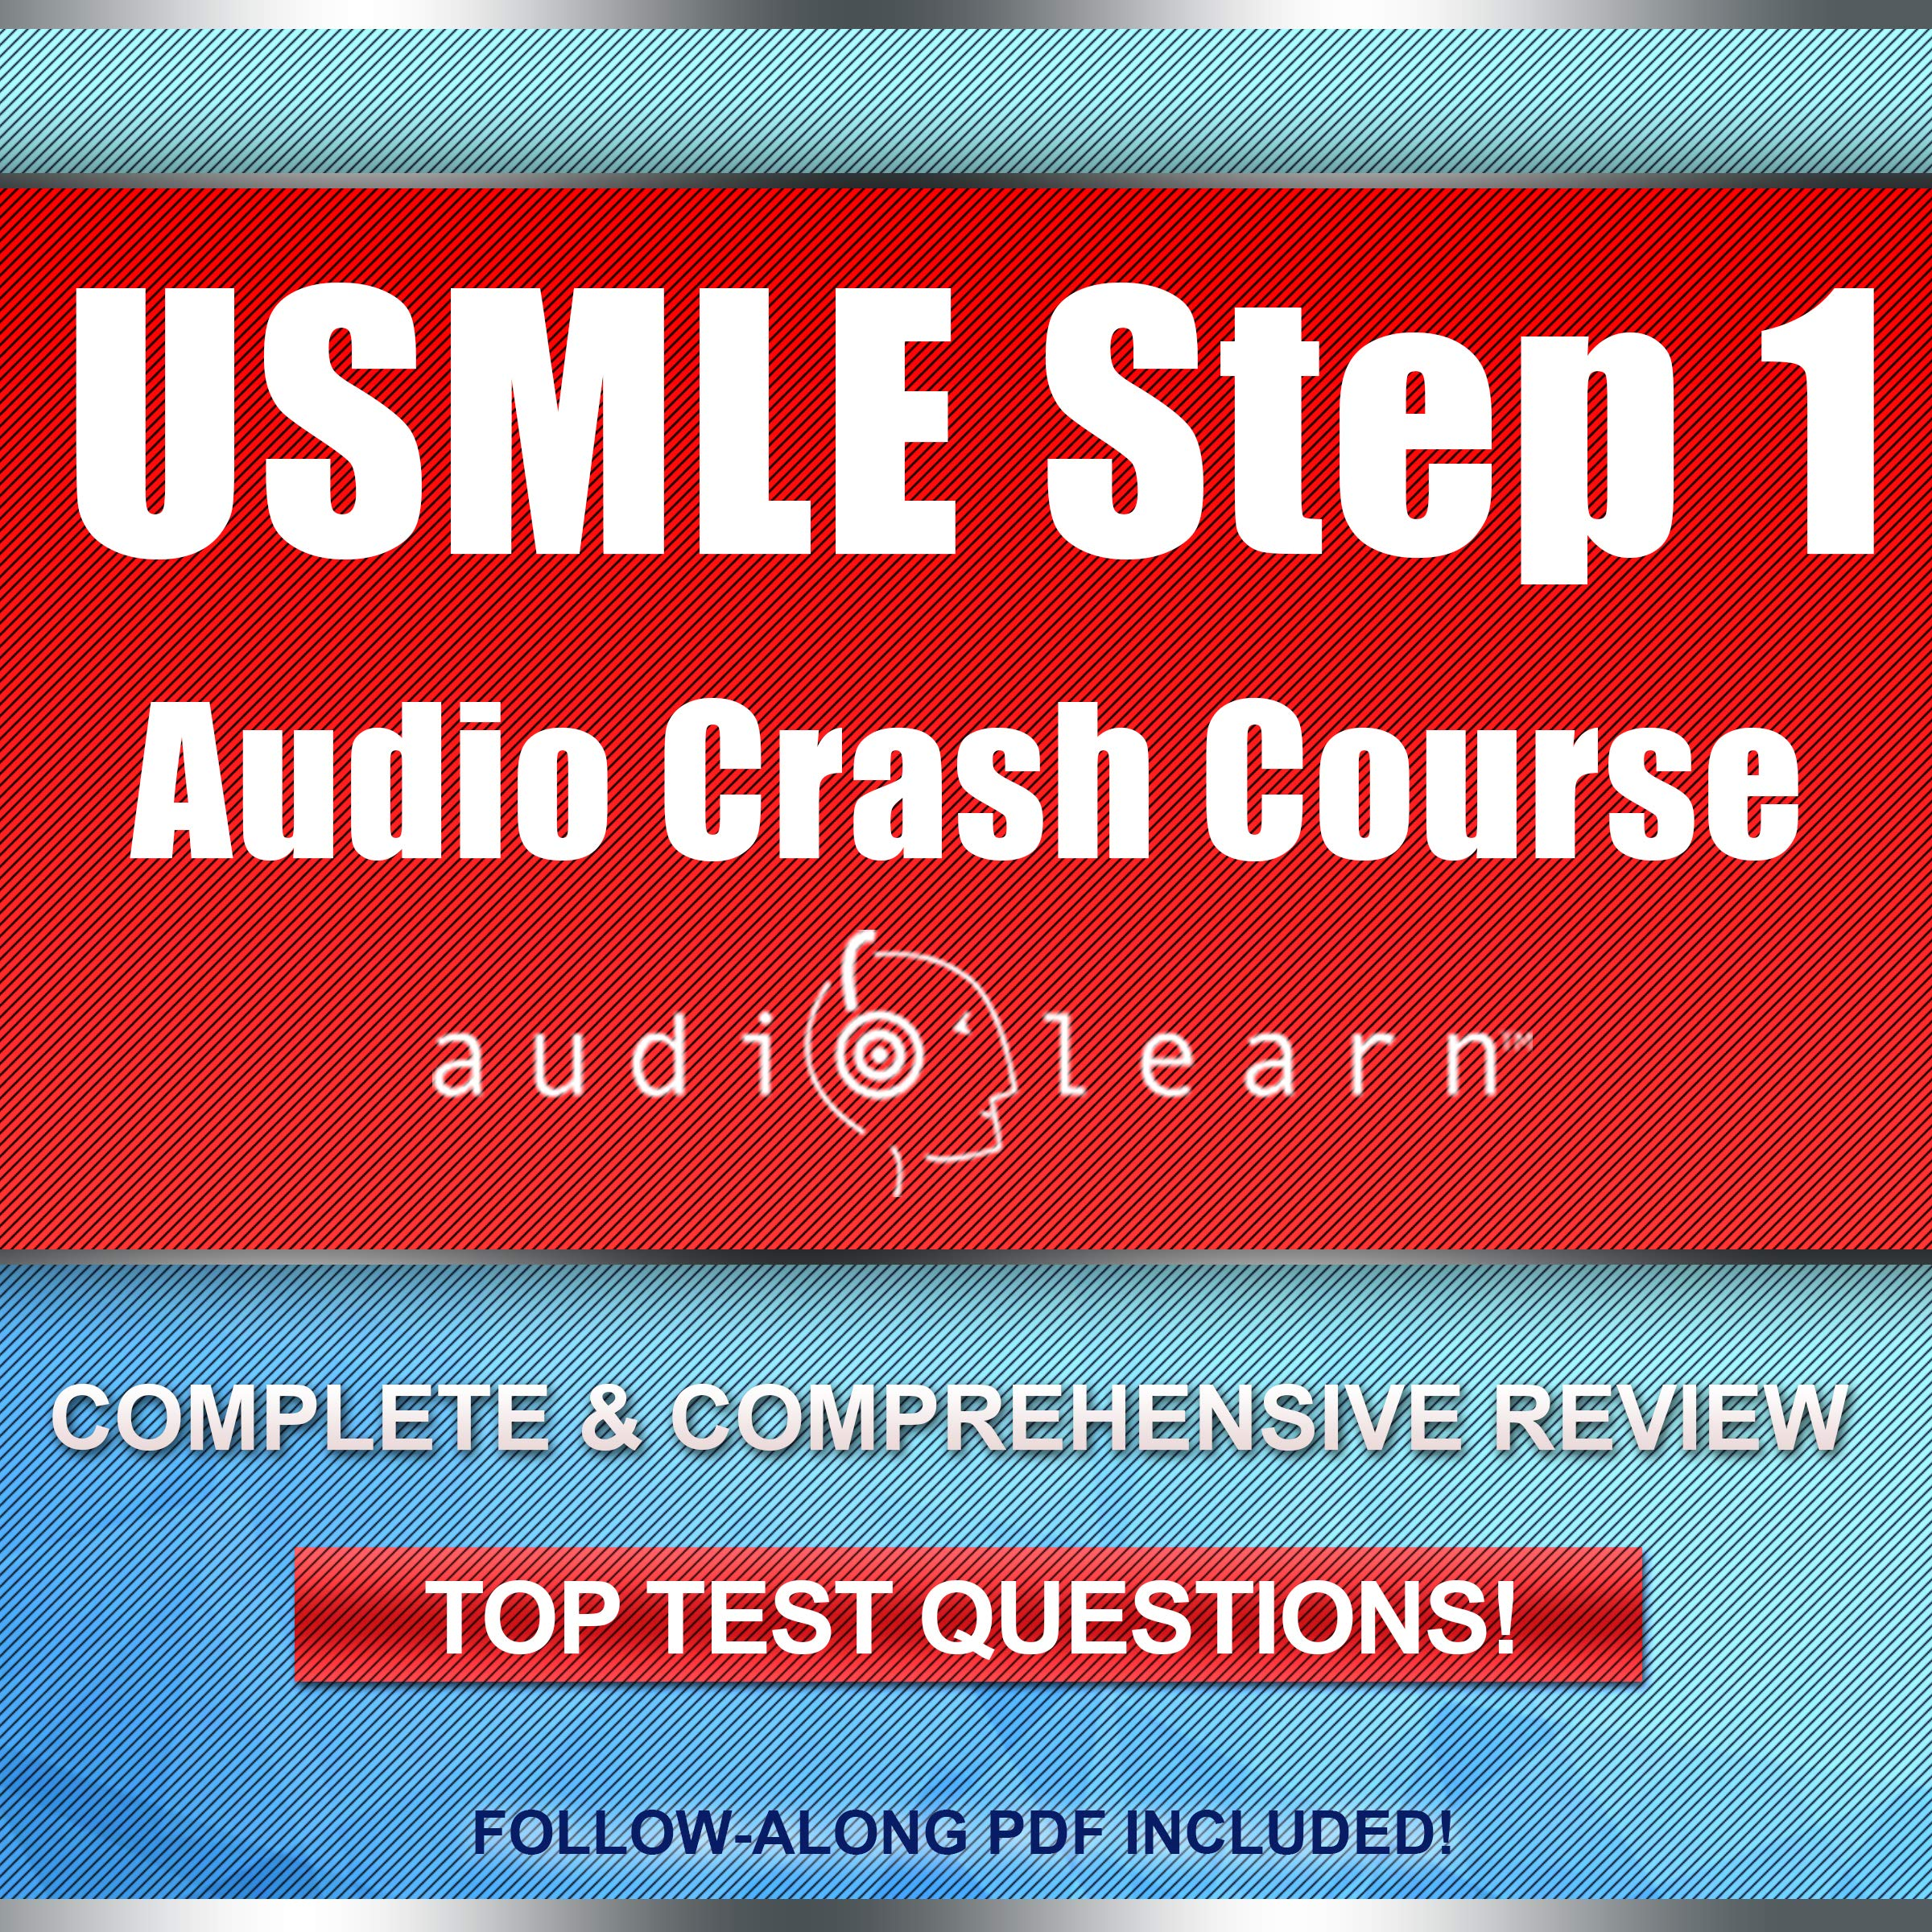 USMLE Step 1 Audio Crash Course - Complete Test Prep and Review for